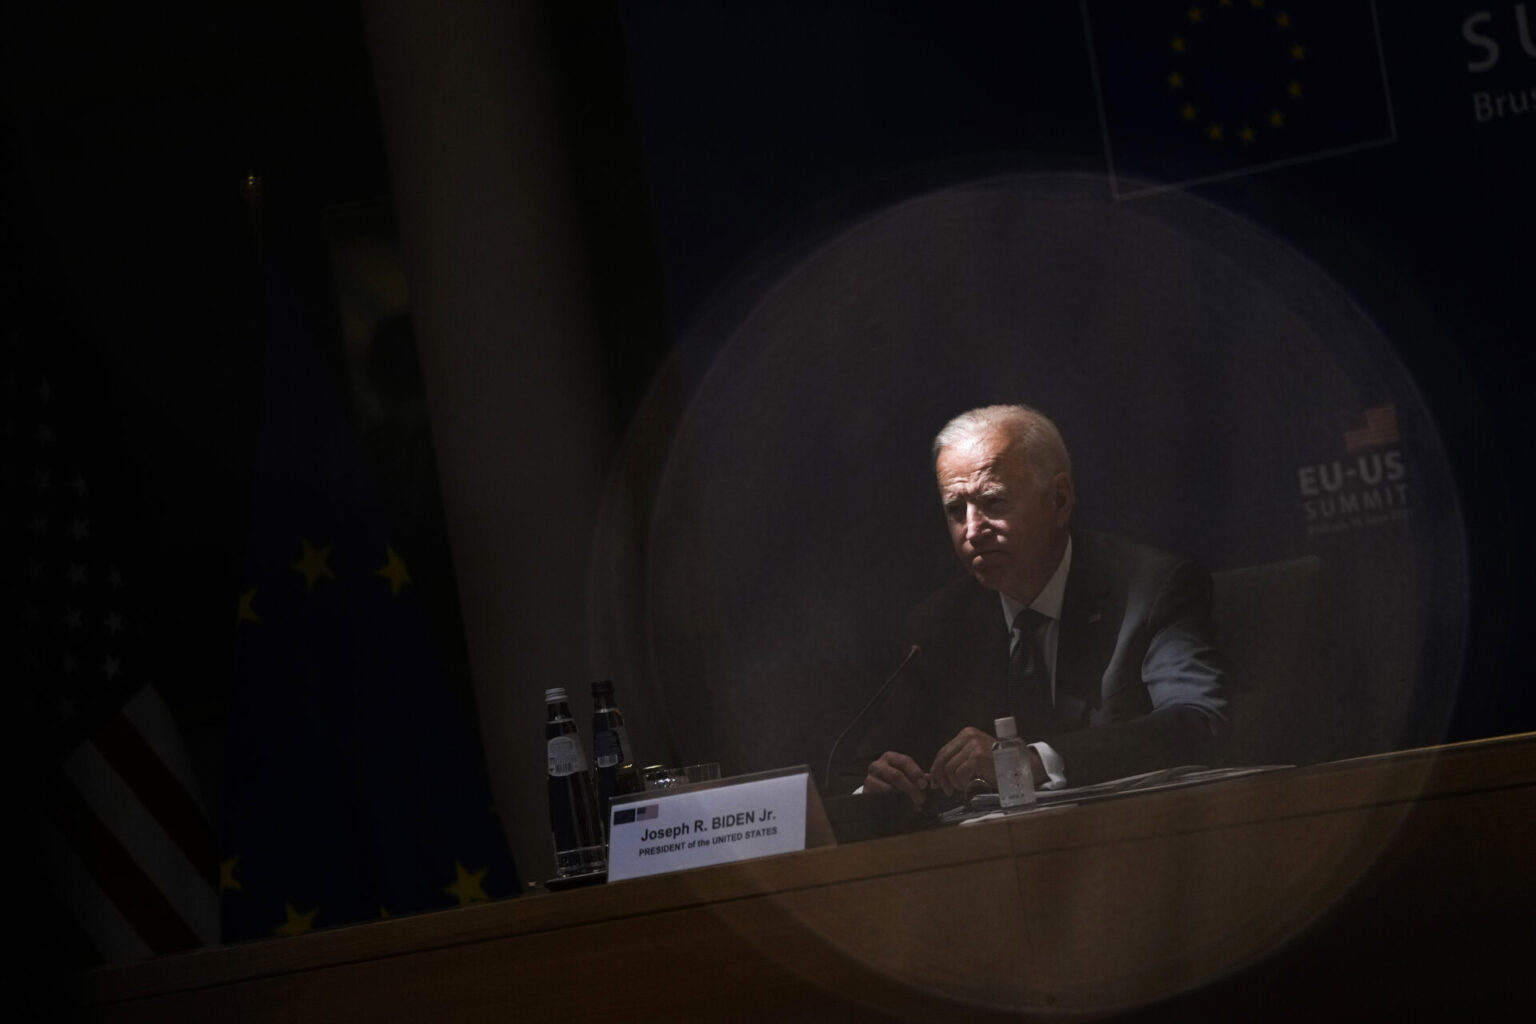 U.S. President Joe Biden at the EU-U.S. summit in Brussels in June 2021. Relieving the U.S. of some of the burden of European defense means giving the Biden administration more leeway to protect democracy at home, Constanze Stelzenmüller argues.